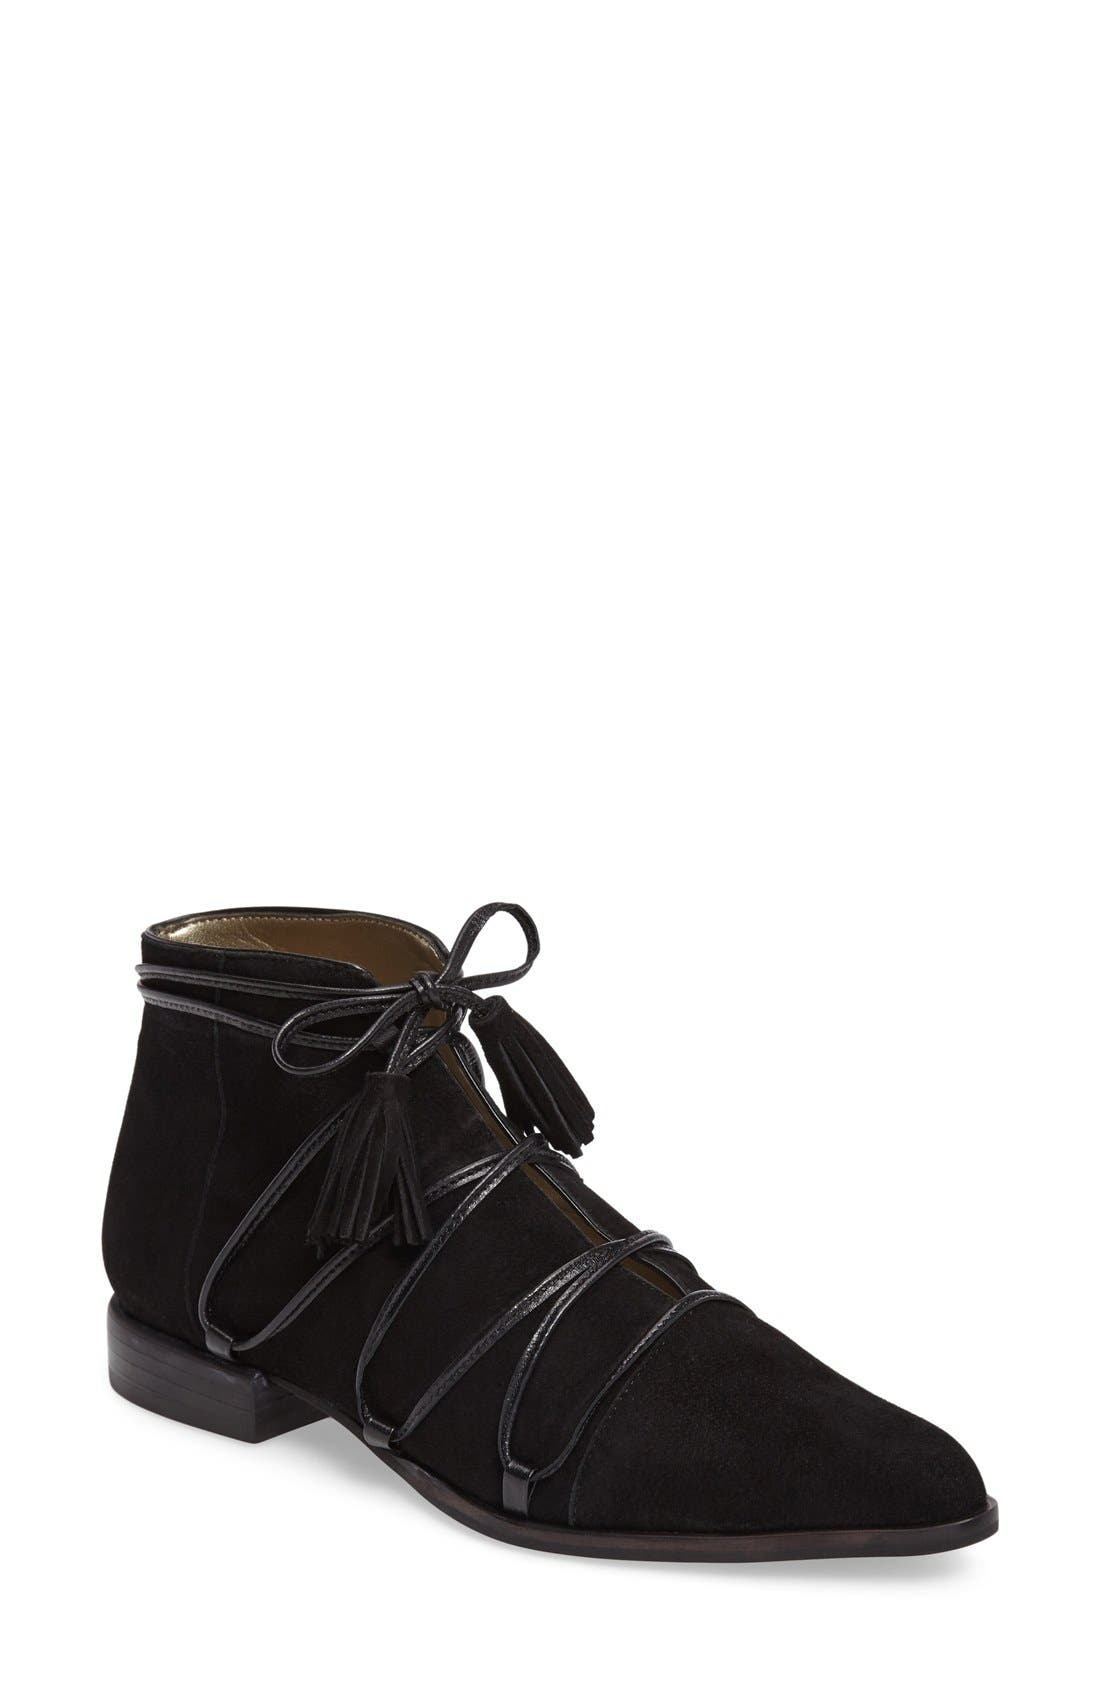 FRENCH SOLE Styles Lace-Up Bootie